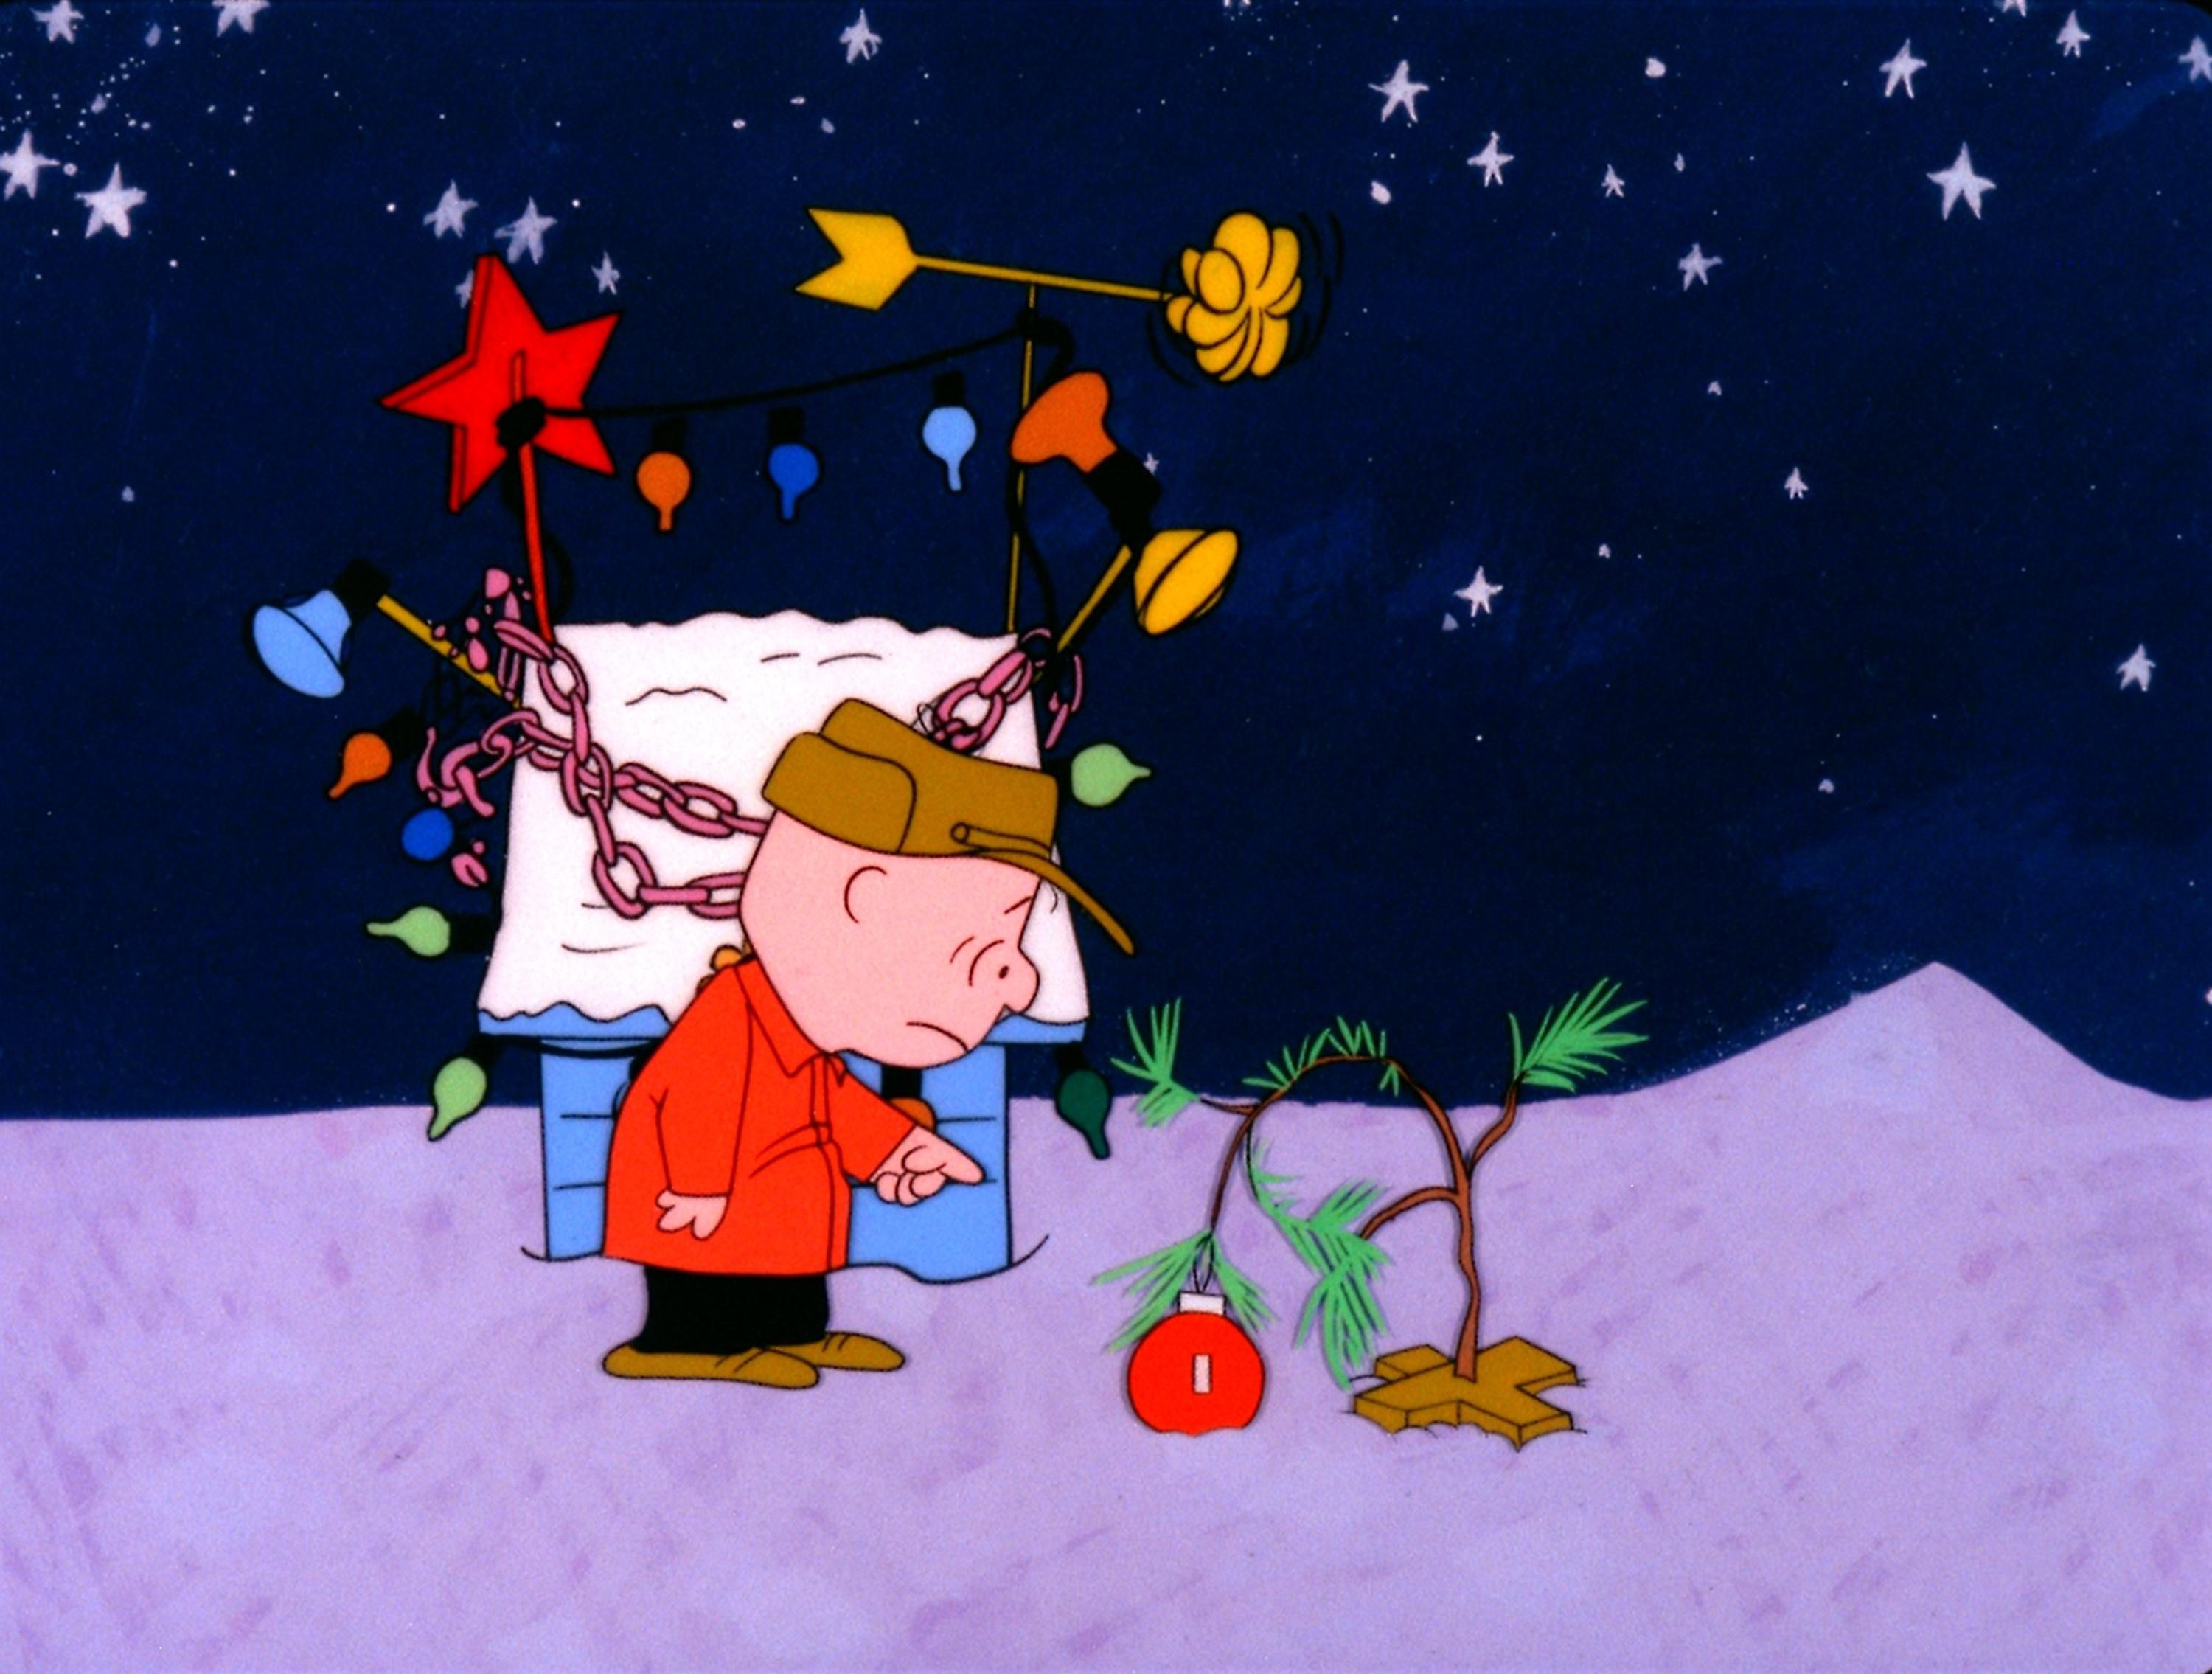 What is the meaning of Christmas, Charlie Brown? -